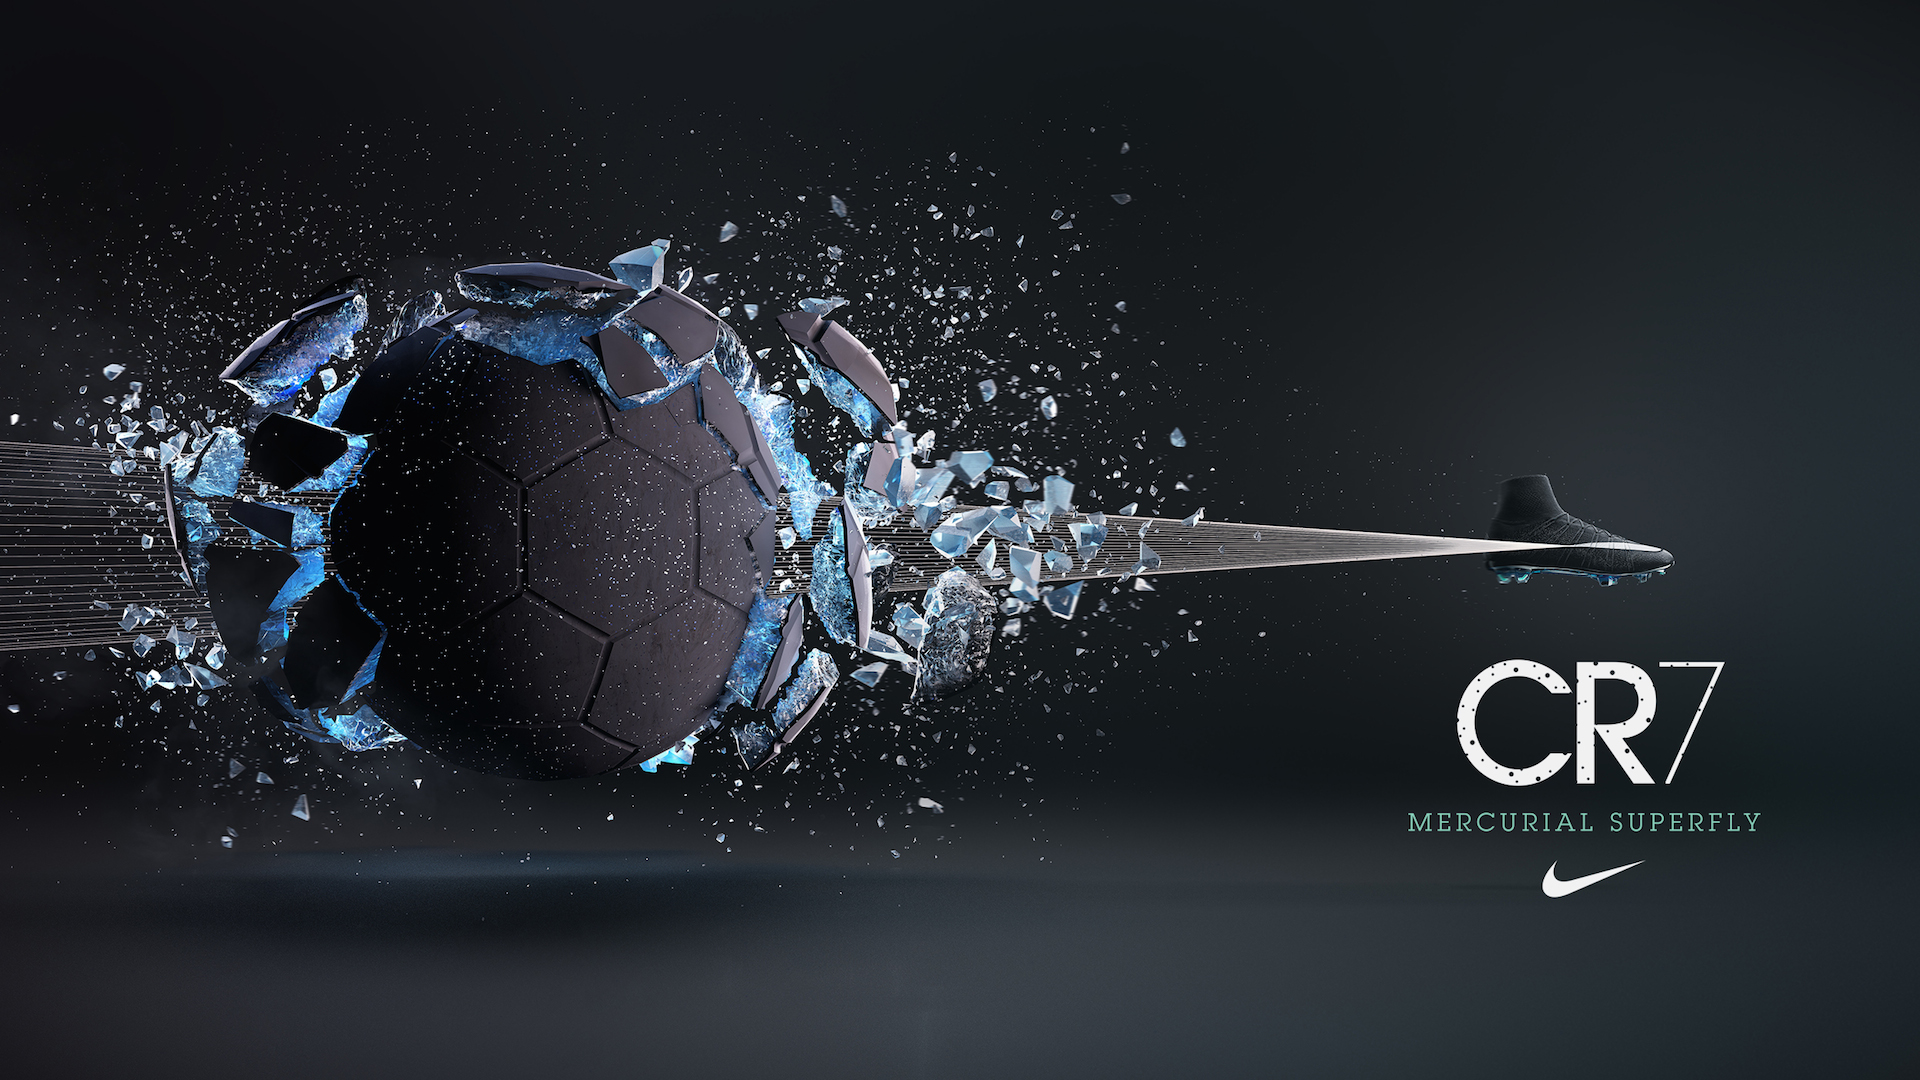 CR7 shoe campaign I was responsible for exploding the football and 1920x1080